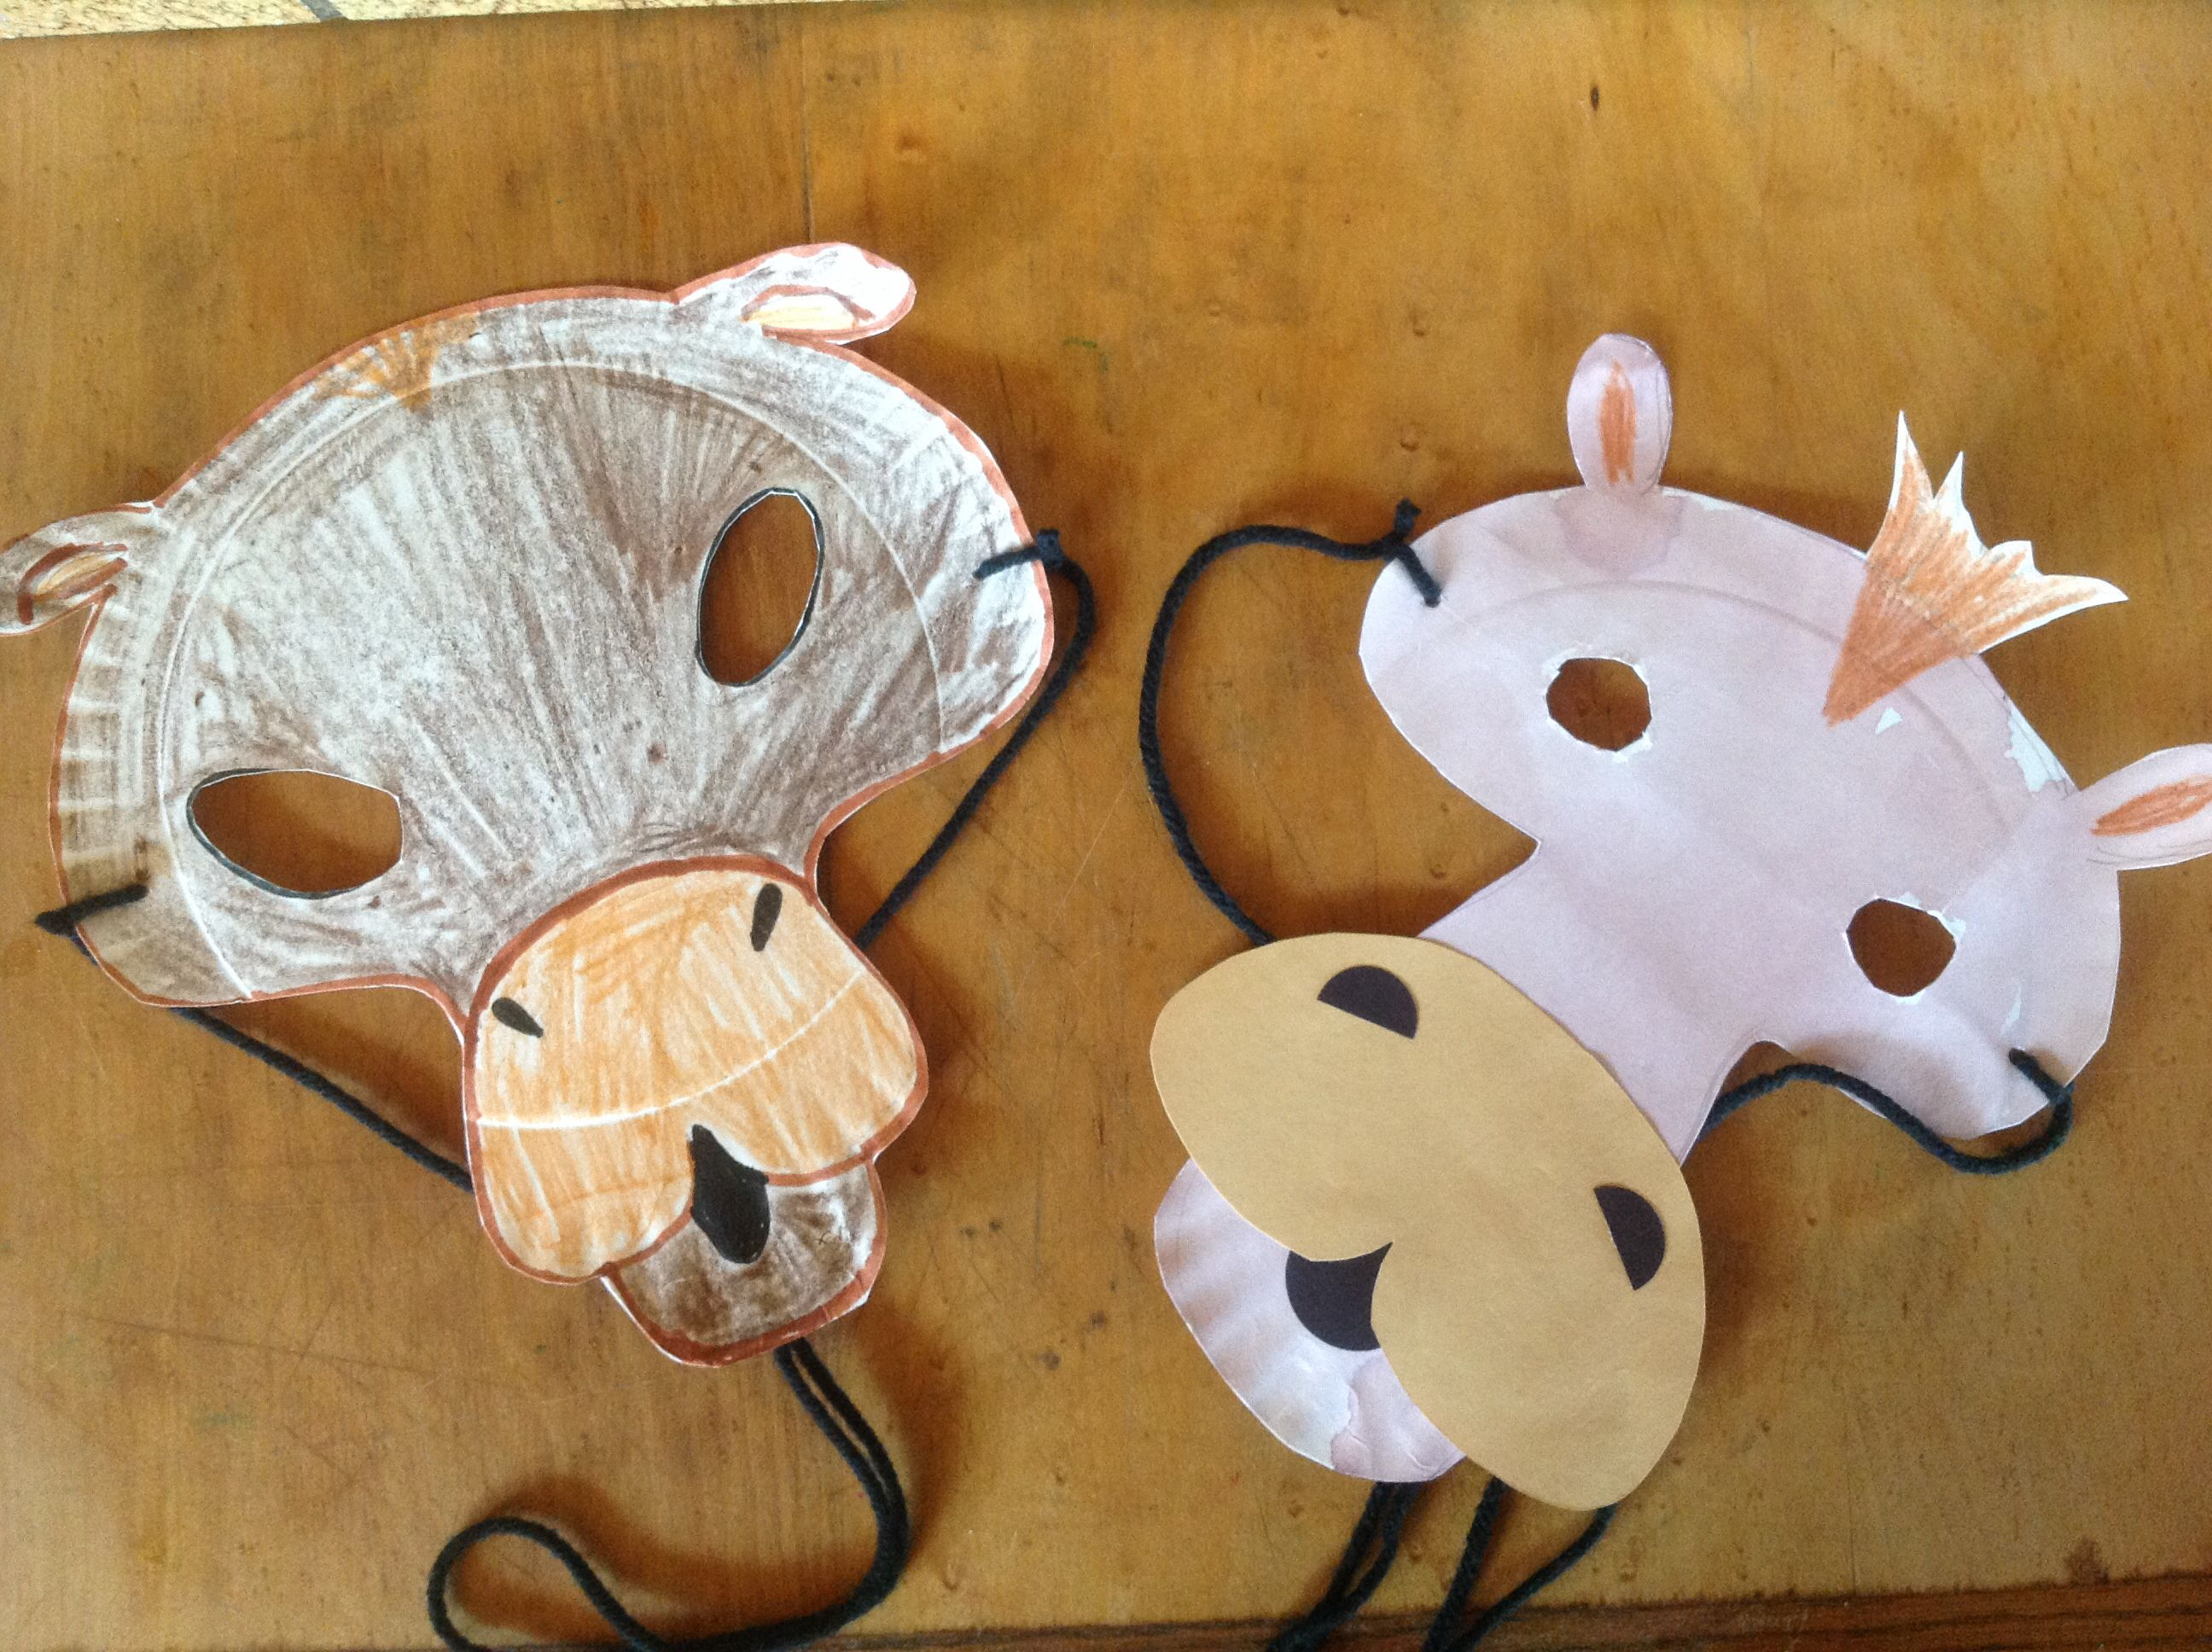 Camel Masks Paper Plate Construction Colored Pencils Or Markers 1 2 Yard Of Yarn Scissors By Mc 2017